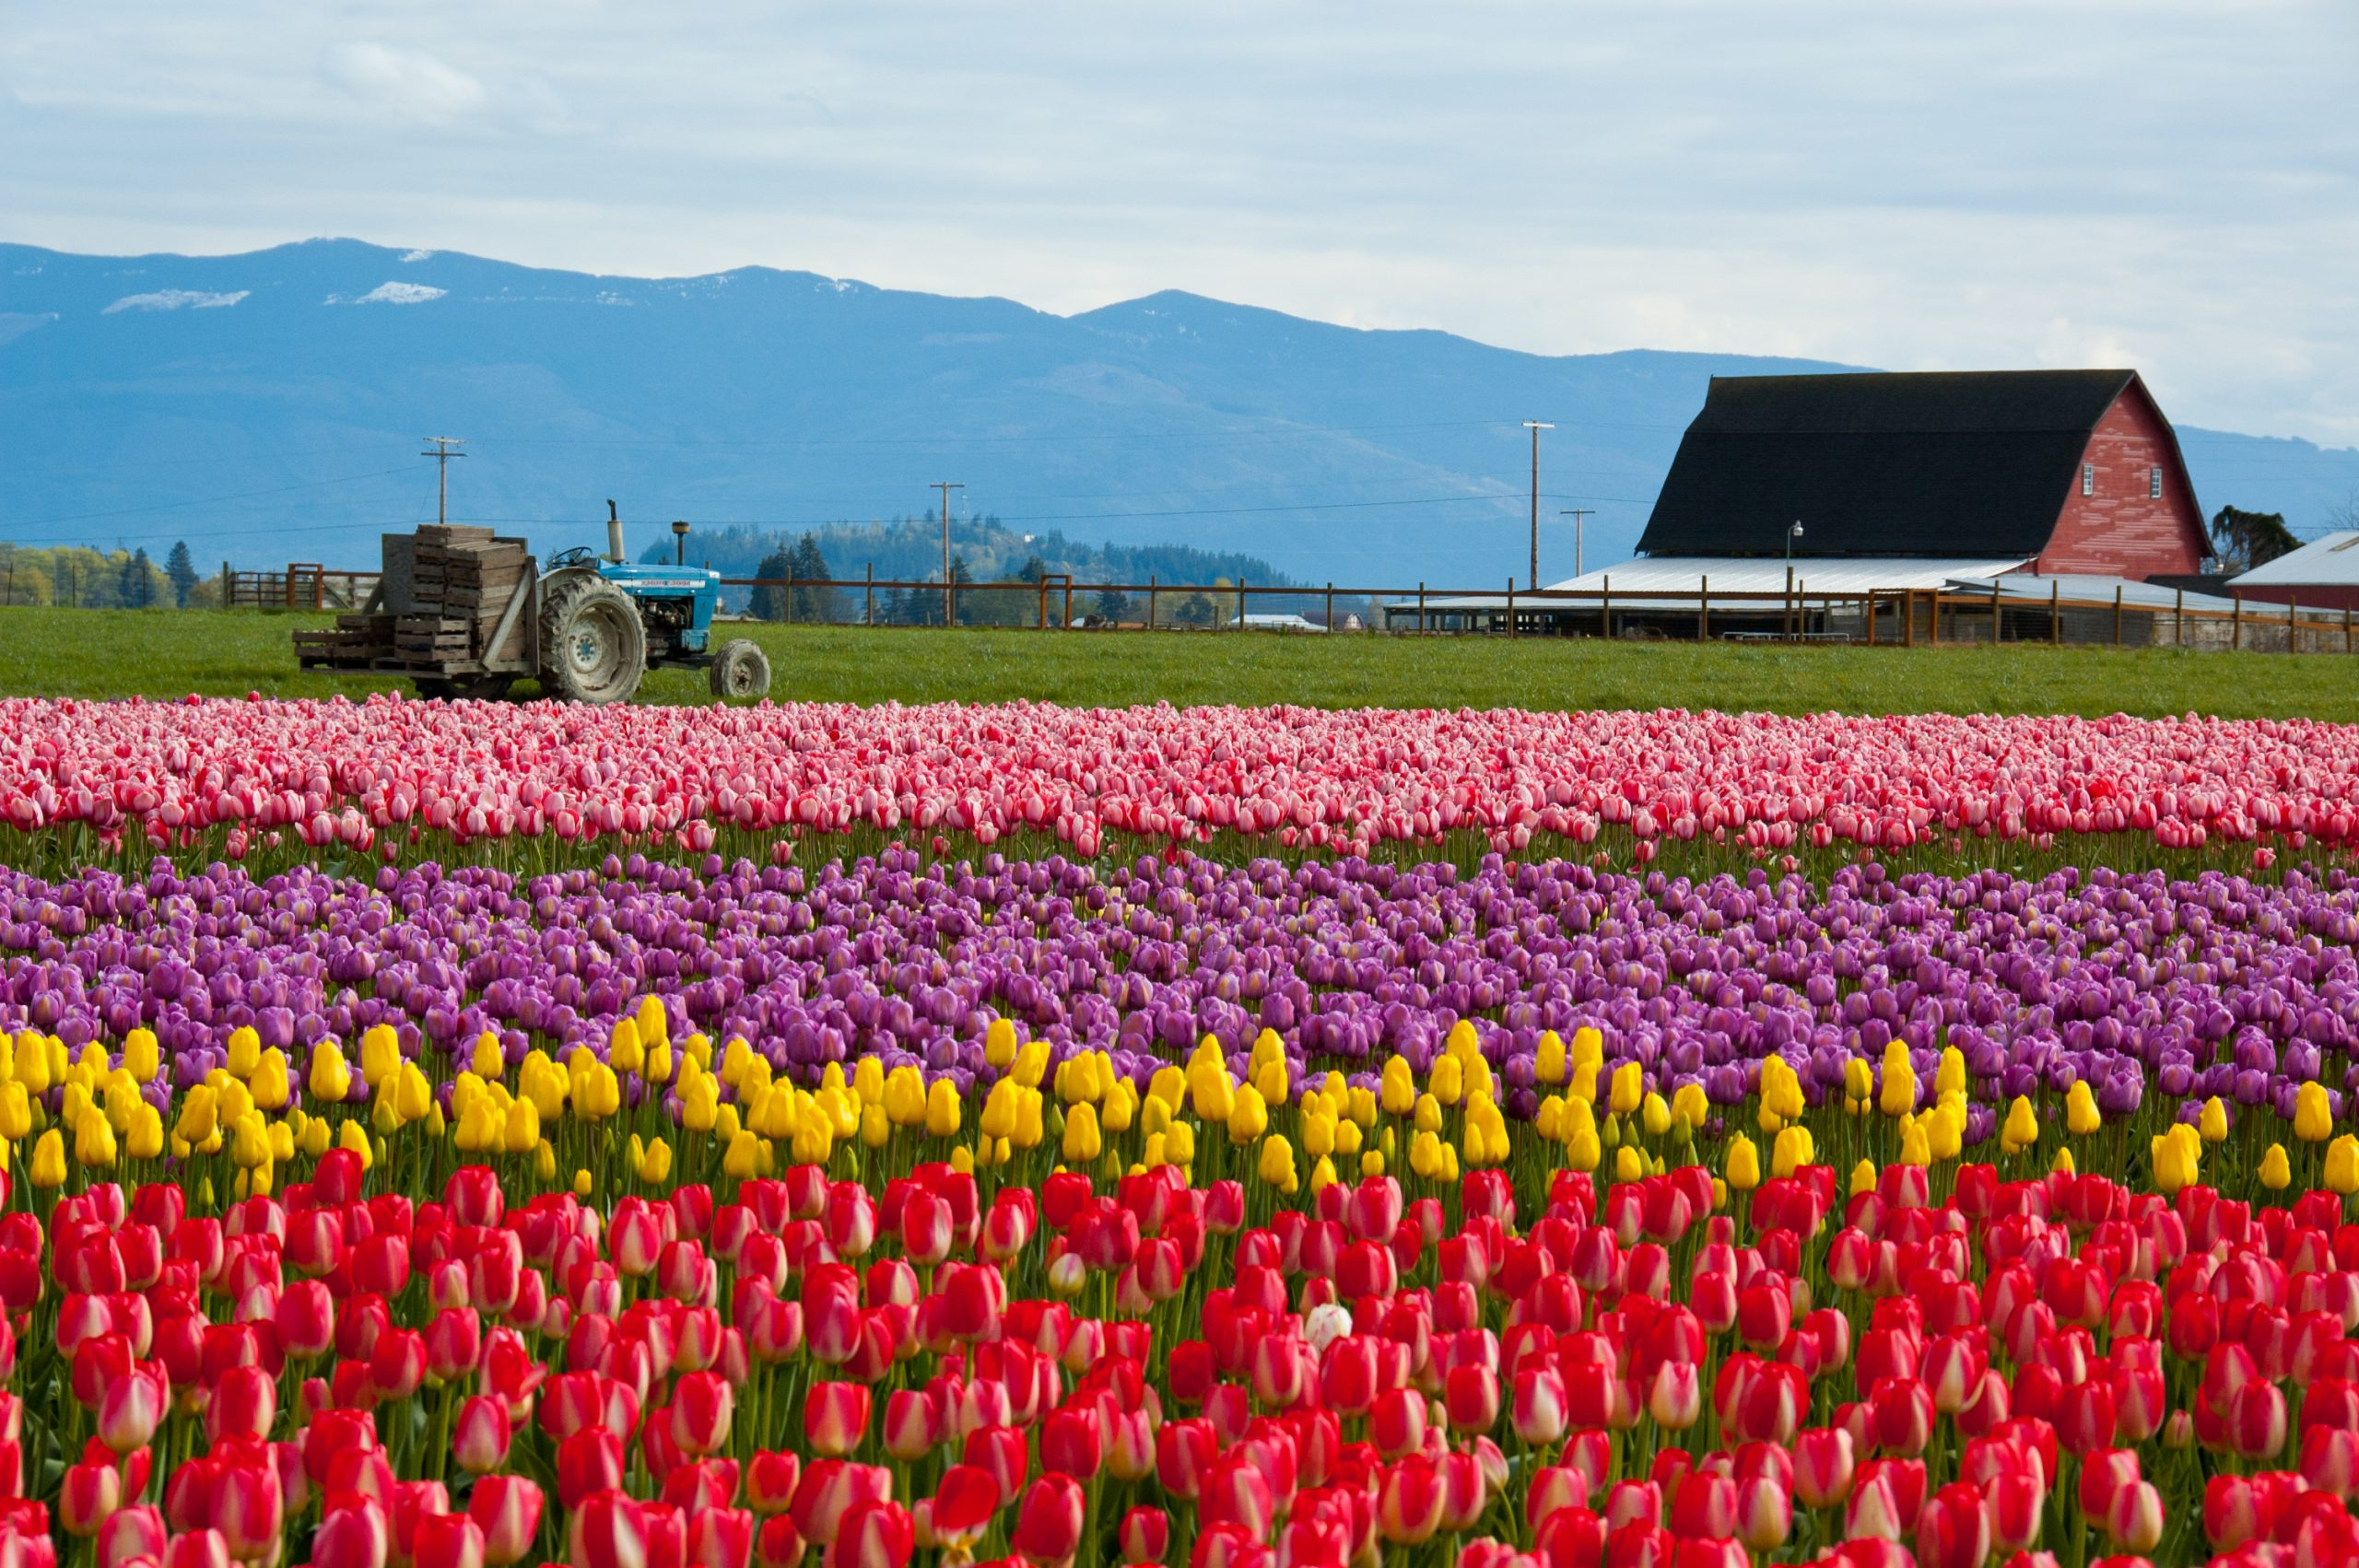 Tulips Are Set To Bloom in April